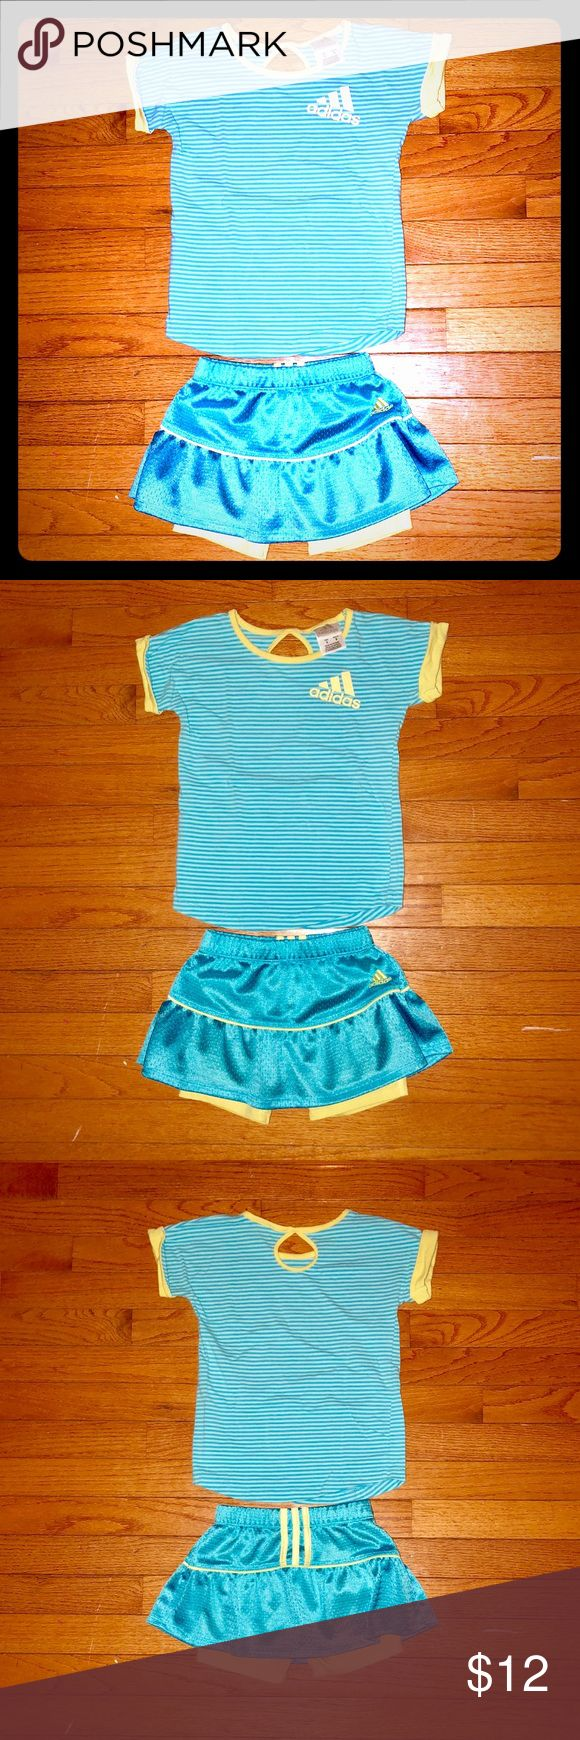 Little Girl's Adidas Two-Piece Skort Set - EUC Adorable little girl's t-shirt and skort set from Adidas. Size 5.  Bottoms have yellow shorts underneath blue Adidas skirt. Only worn a few times and in excellent used condition. Smoke-free home. adidas Matching Sets